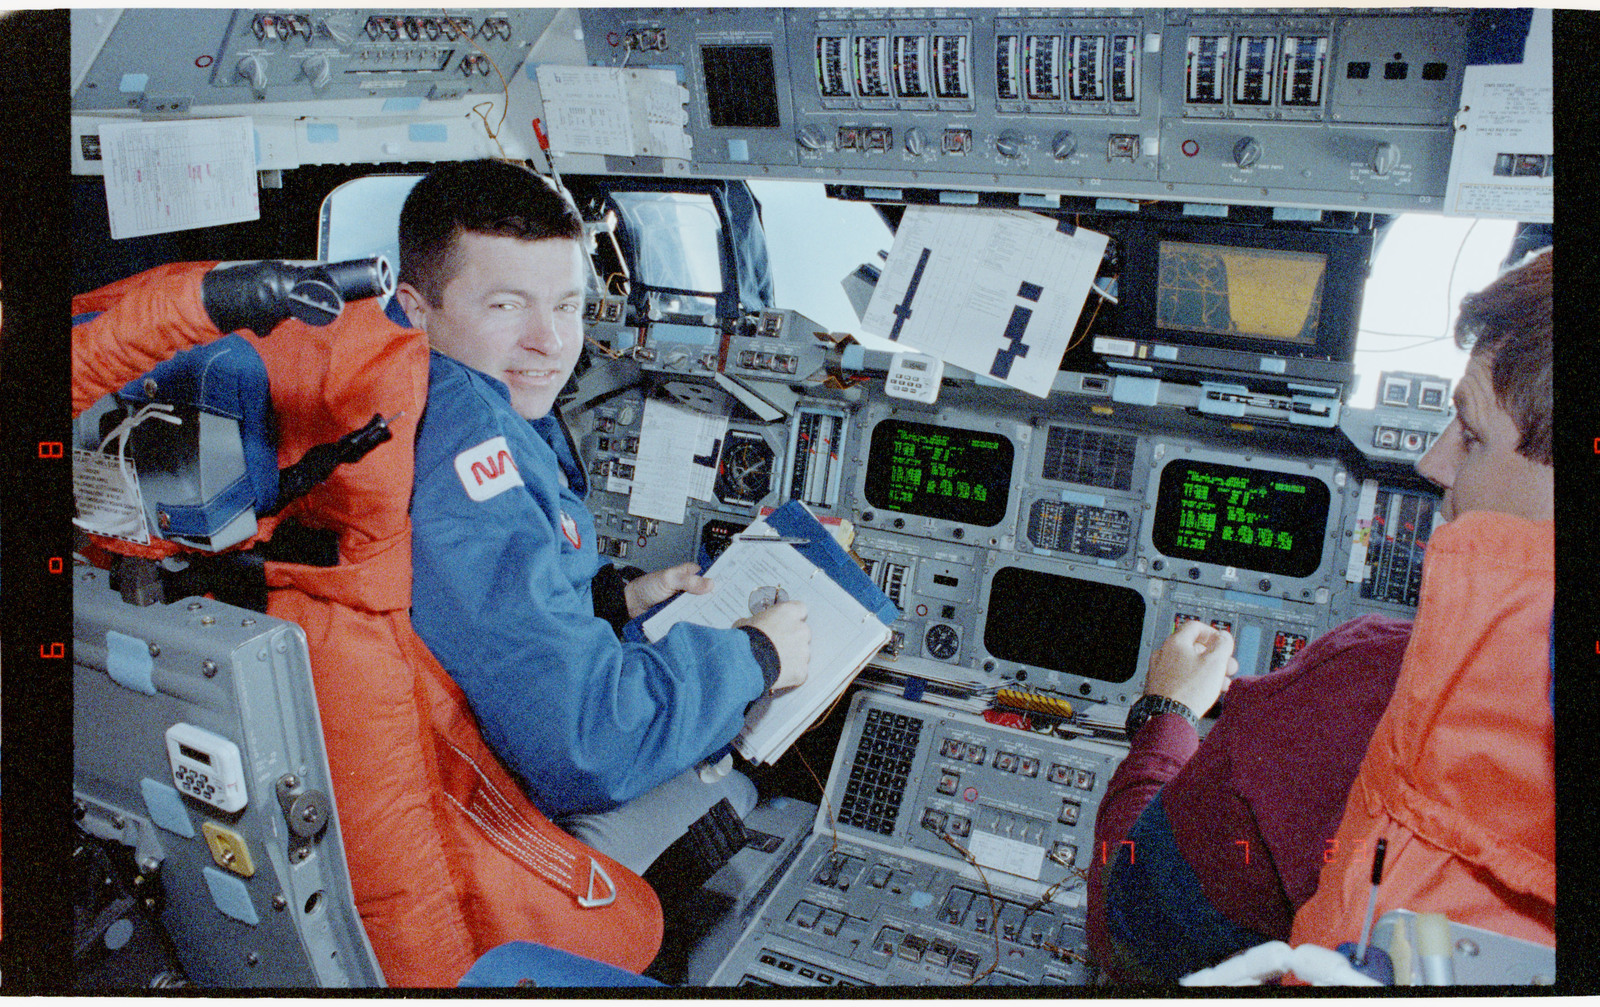 STS056-39-010 - STS-056 - Crewmembers in the fwd flight deck reviewing inflight procedures manual.